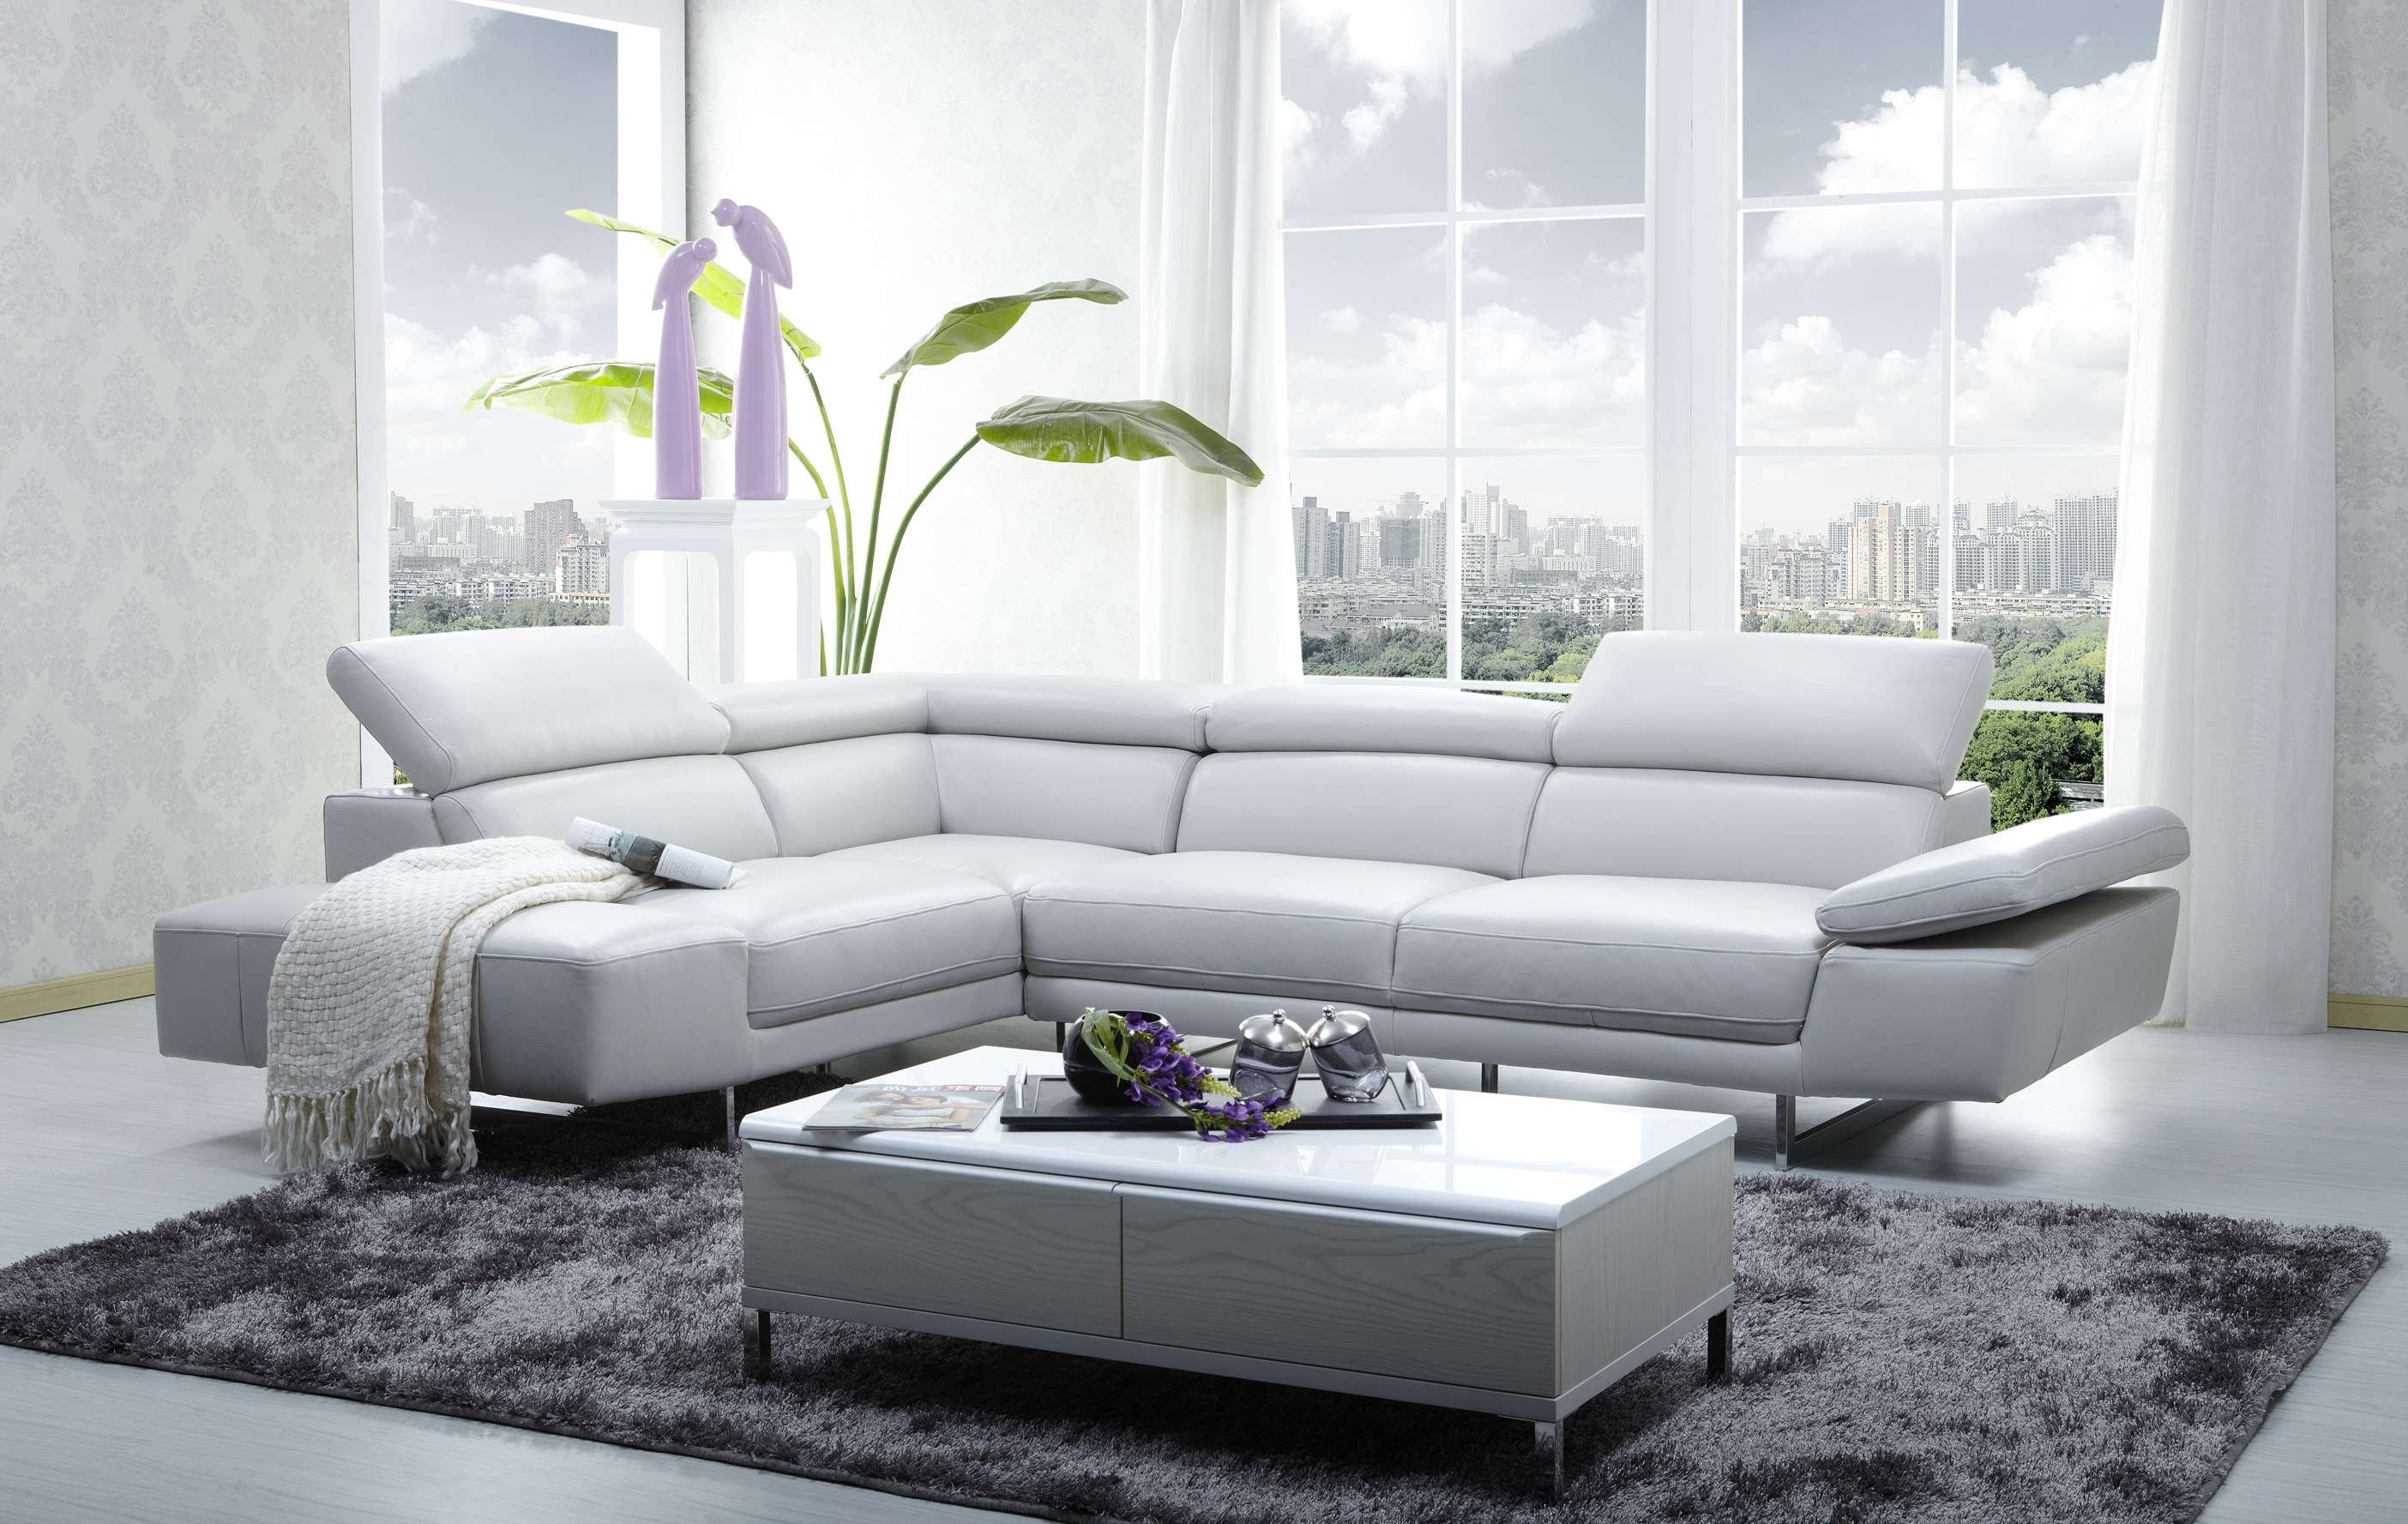 Fashionable 1717 Italian Leather Modern Sectional Sofa With Regard To Modern Sectional Sofas (Gallery 16 of 20)